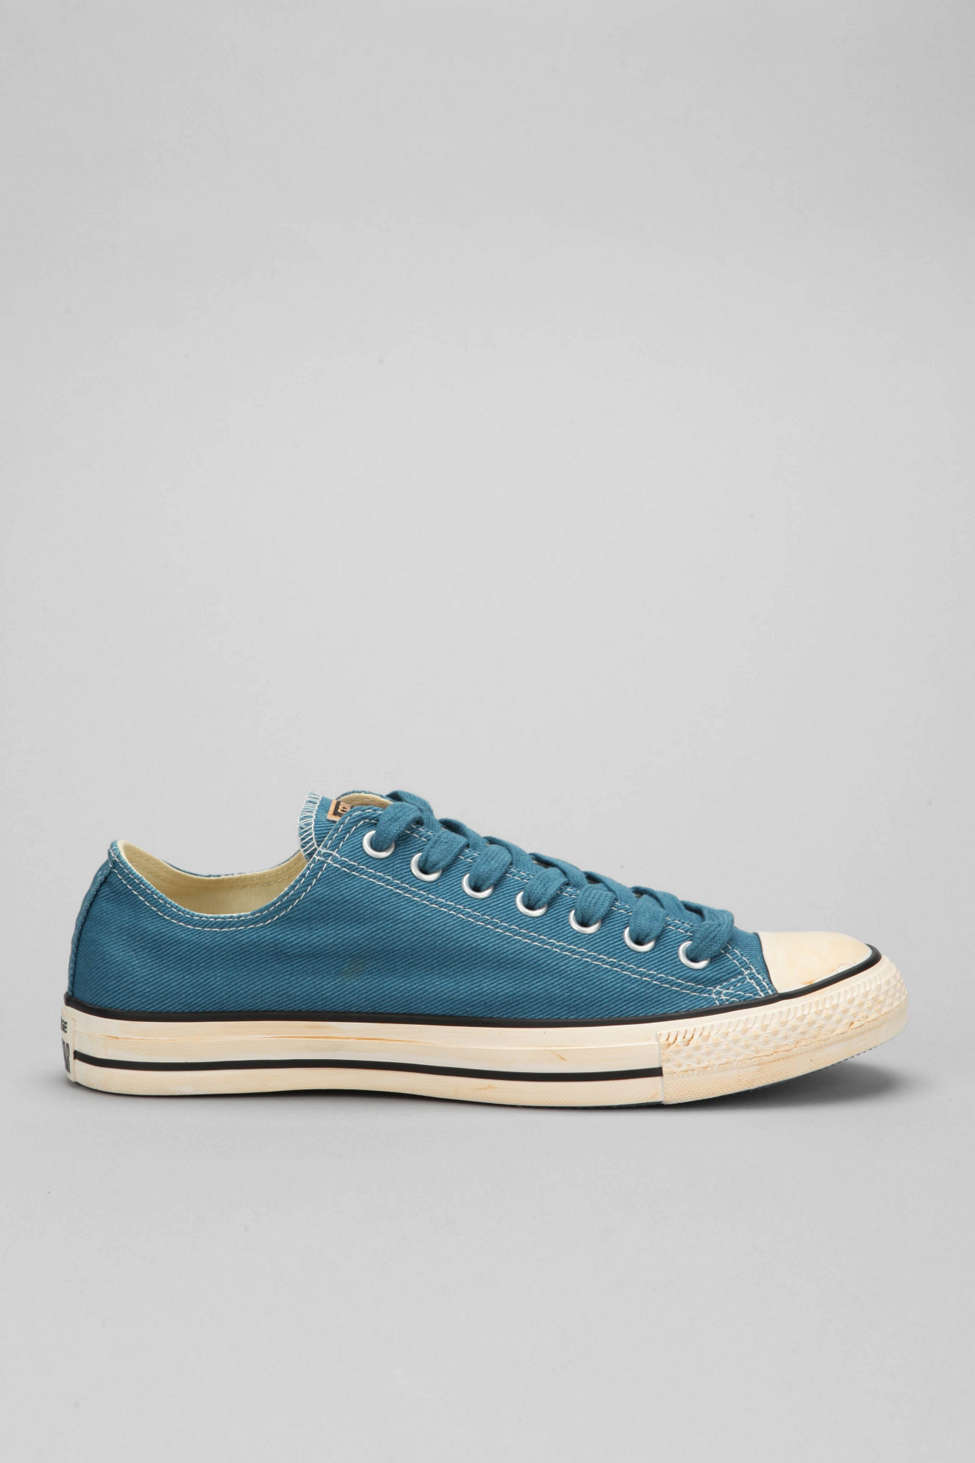 Converse Chuck Taylor All Star Old School Washed Low Top Mens